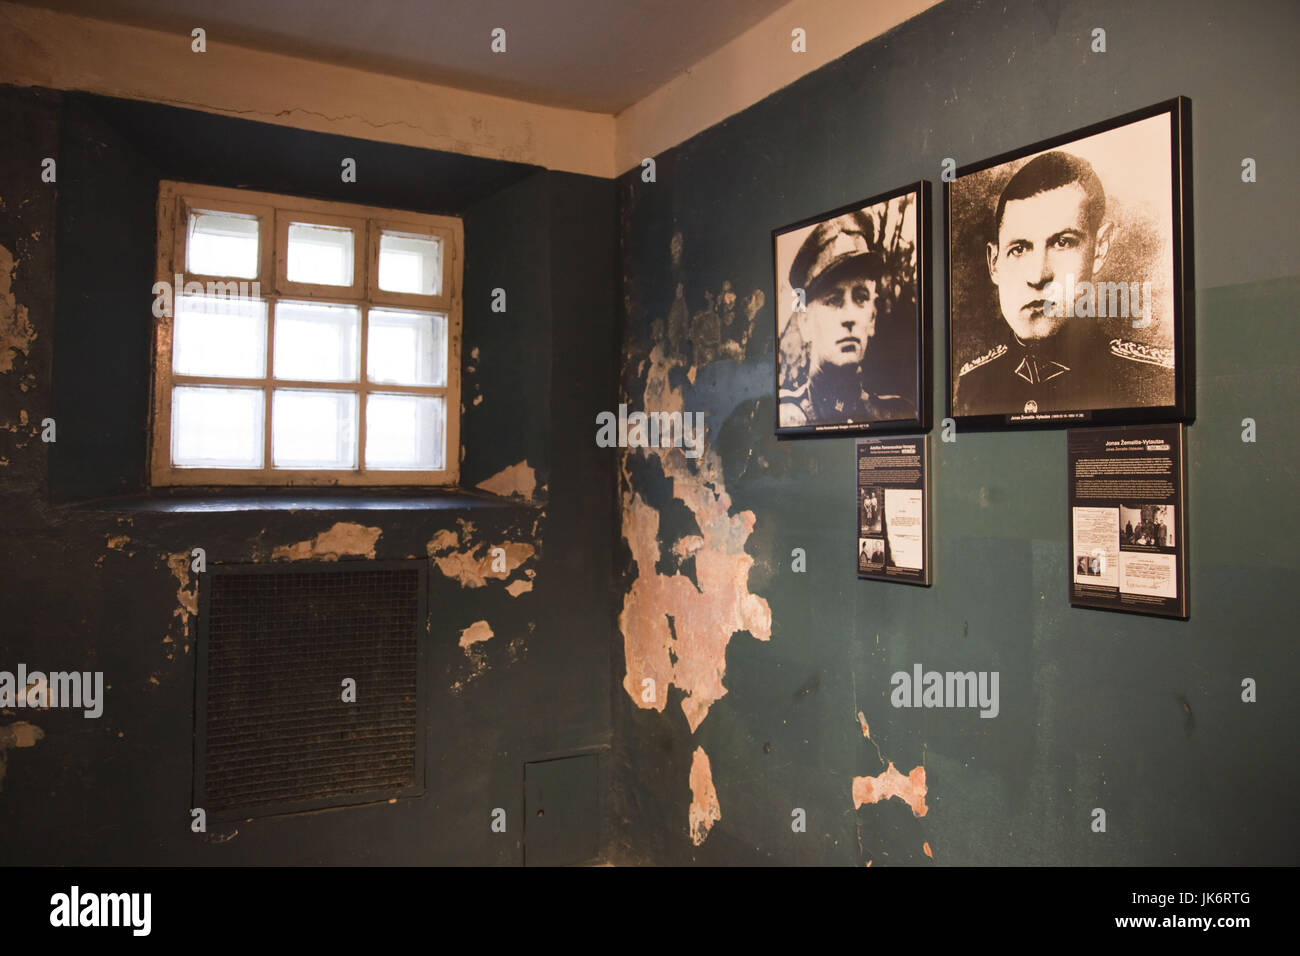 Lithuania, Vilnius, Museum of Genocide Victims, former KGB headquarters, photographs of victims - Stock Image